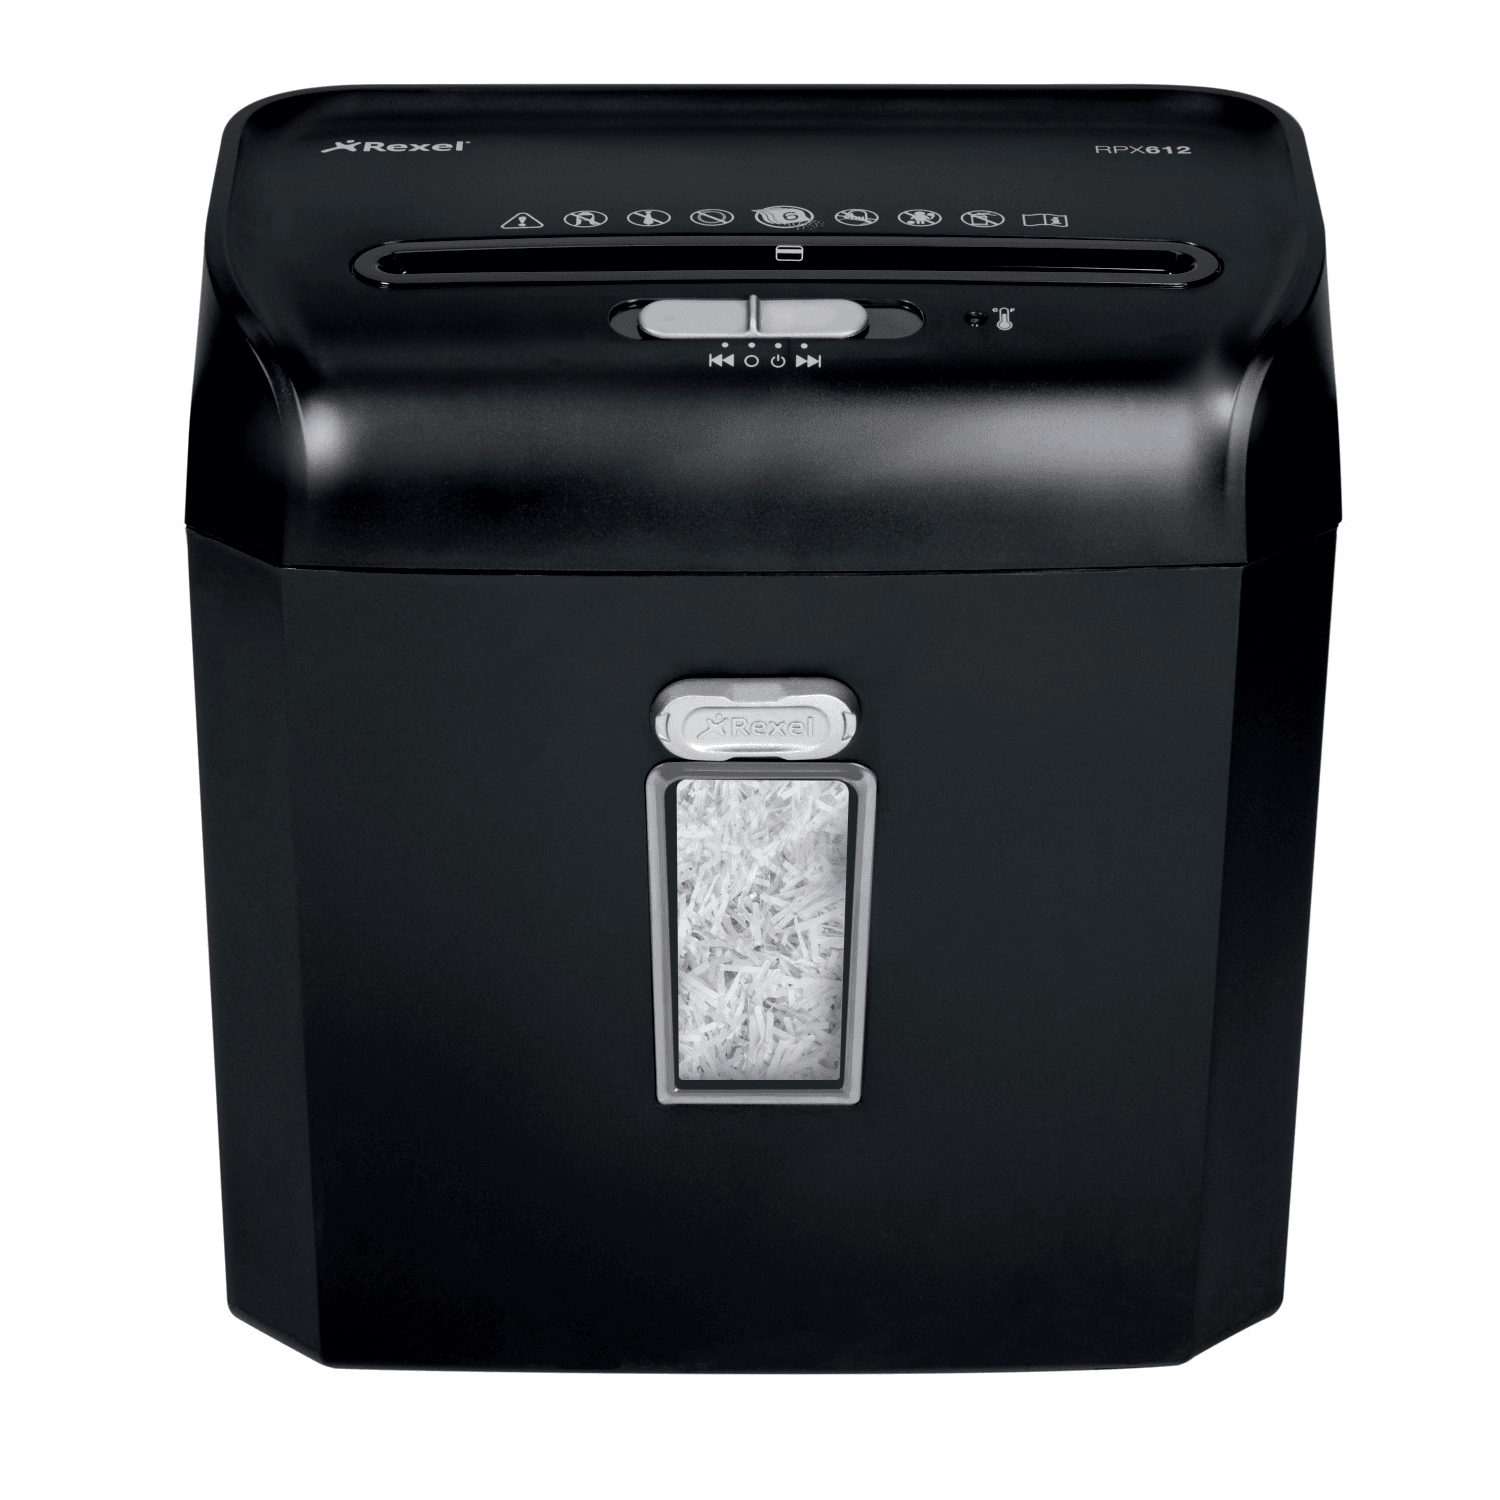 Rexel Promax RPX612 Cross Cut Shredder